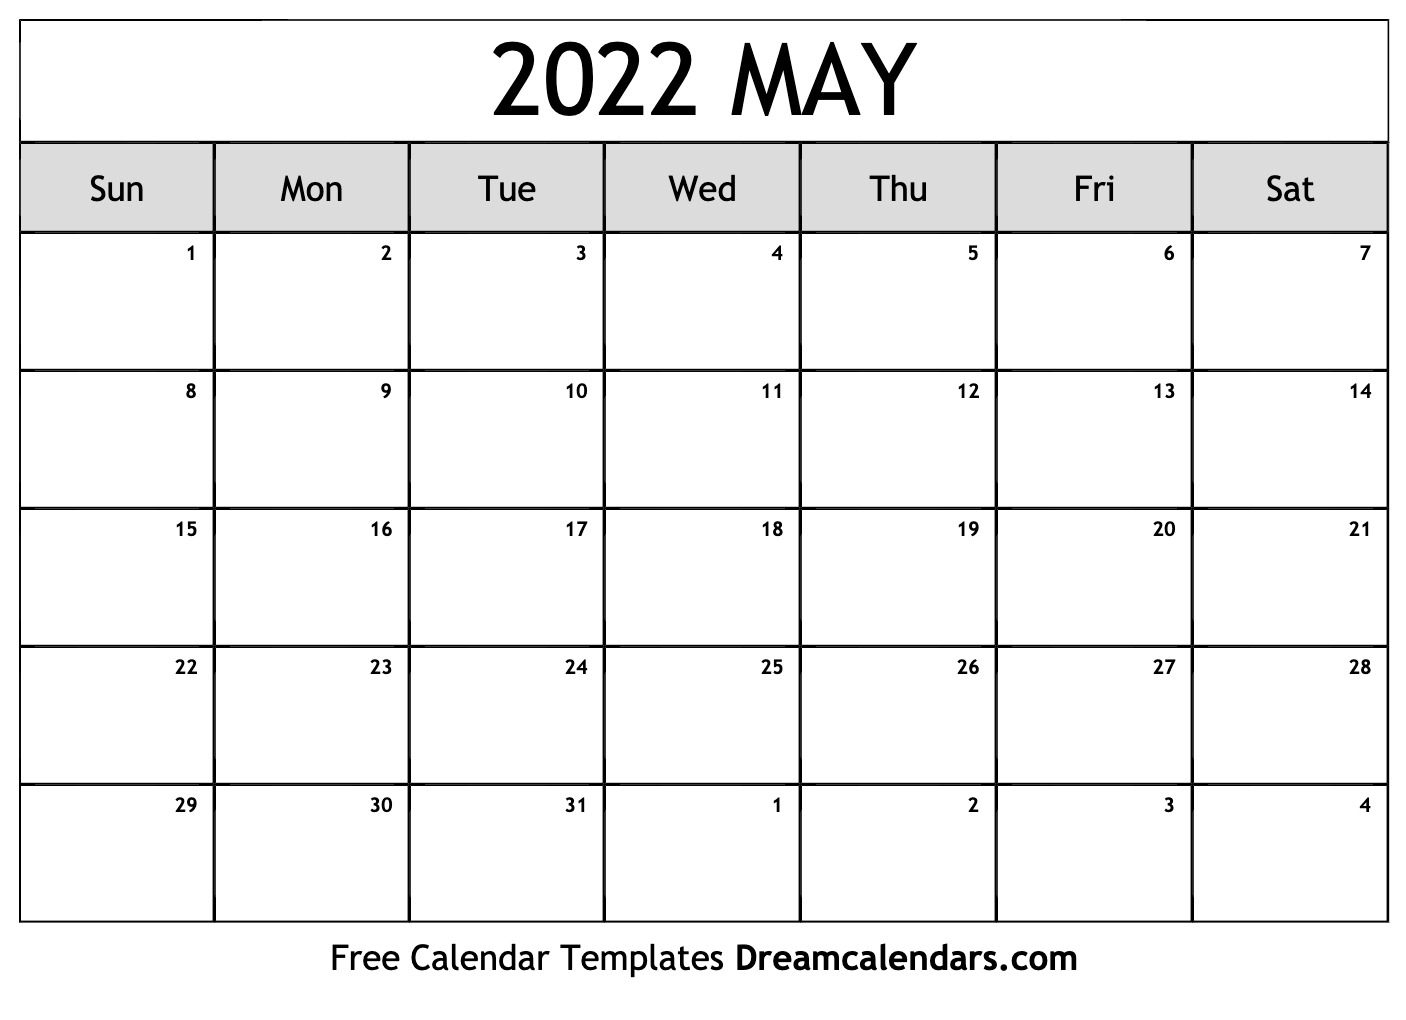 By default, a template file download goes into the downloads folder on your computer. May 2022 calendar | free blank printable templates